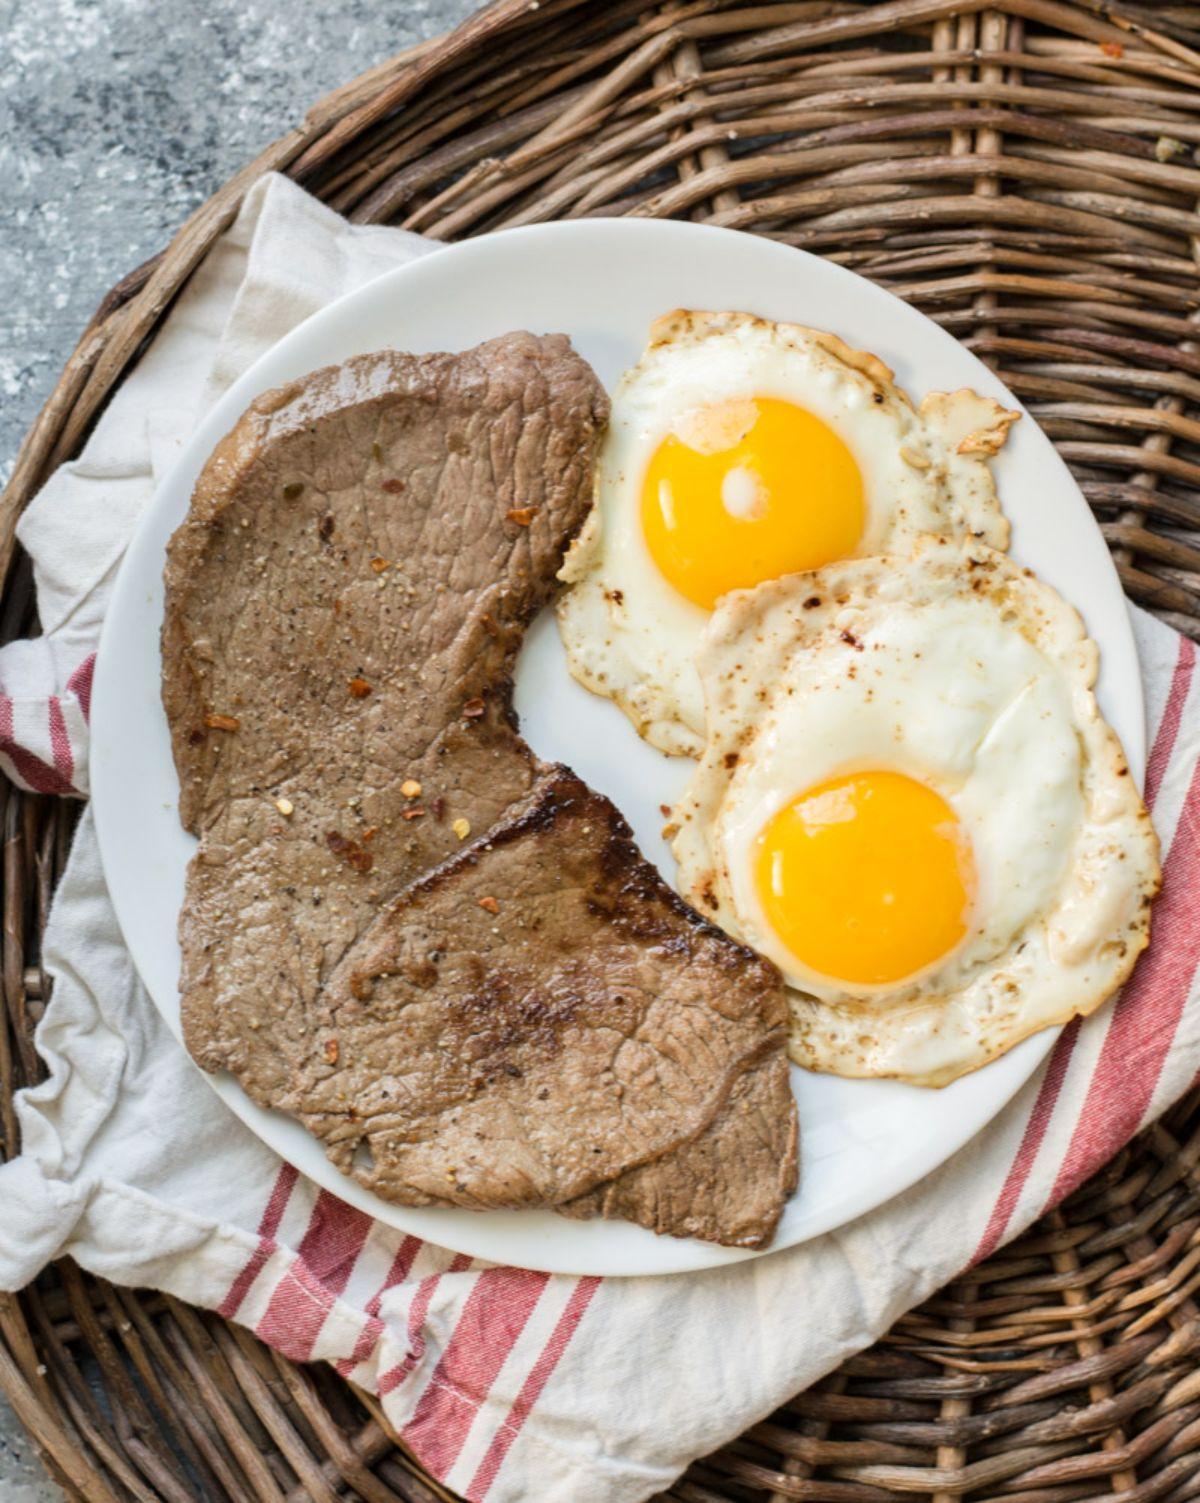 On a wicker tray is a white and red cloth, on which rests a white plate. On the plate is a large steak and 2 fried eggs.